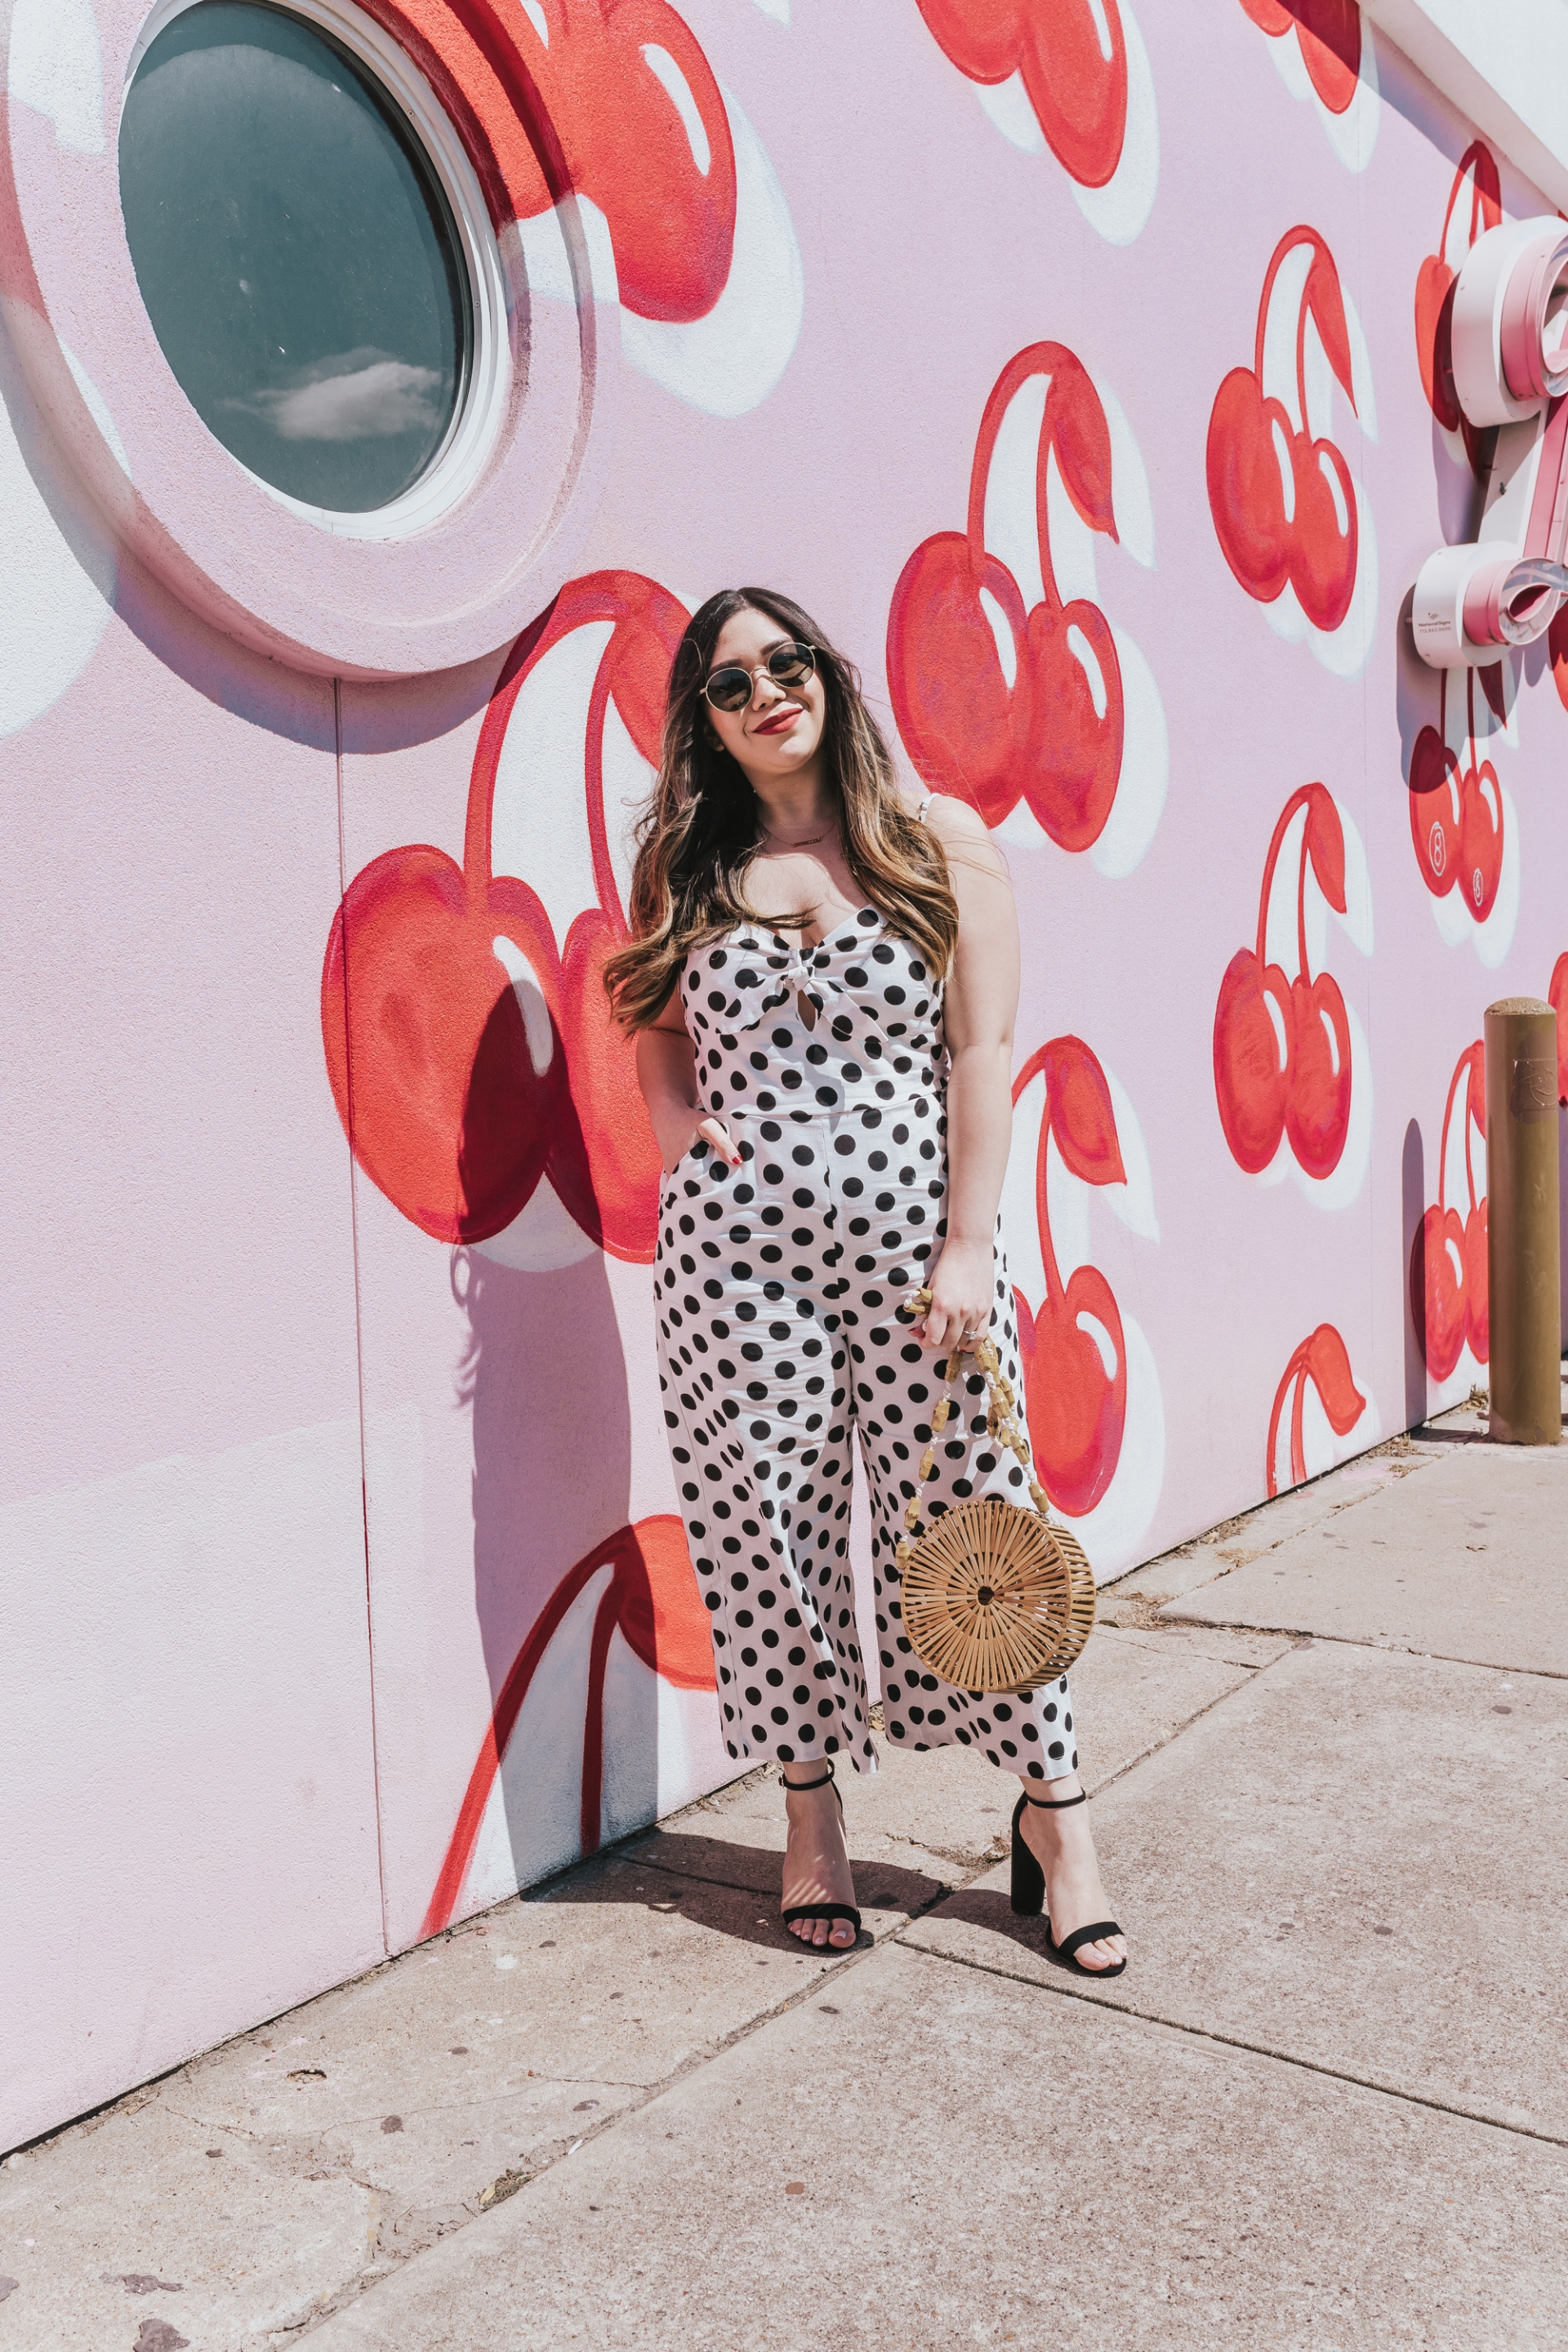 The Pink Lily Boutique Amazing Moments Jumpsuit Nordstrom Sam Edelman Yaro Ankle Strap Sandals Black Heels Cult Gaia Dupe Circle Bamboo Bag Round Bamboo Bag Colourpop Bumble Matte Lipstick Round Sunglasses Retro Sunglasses Amazon Finds